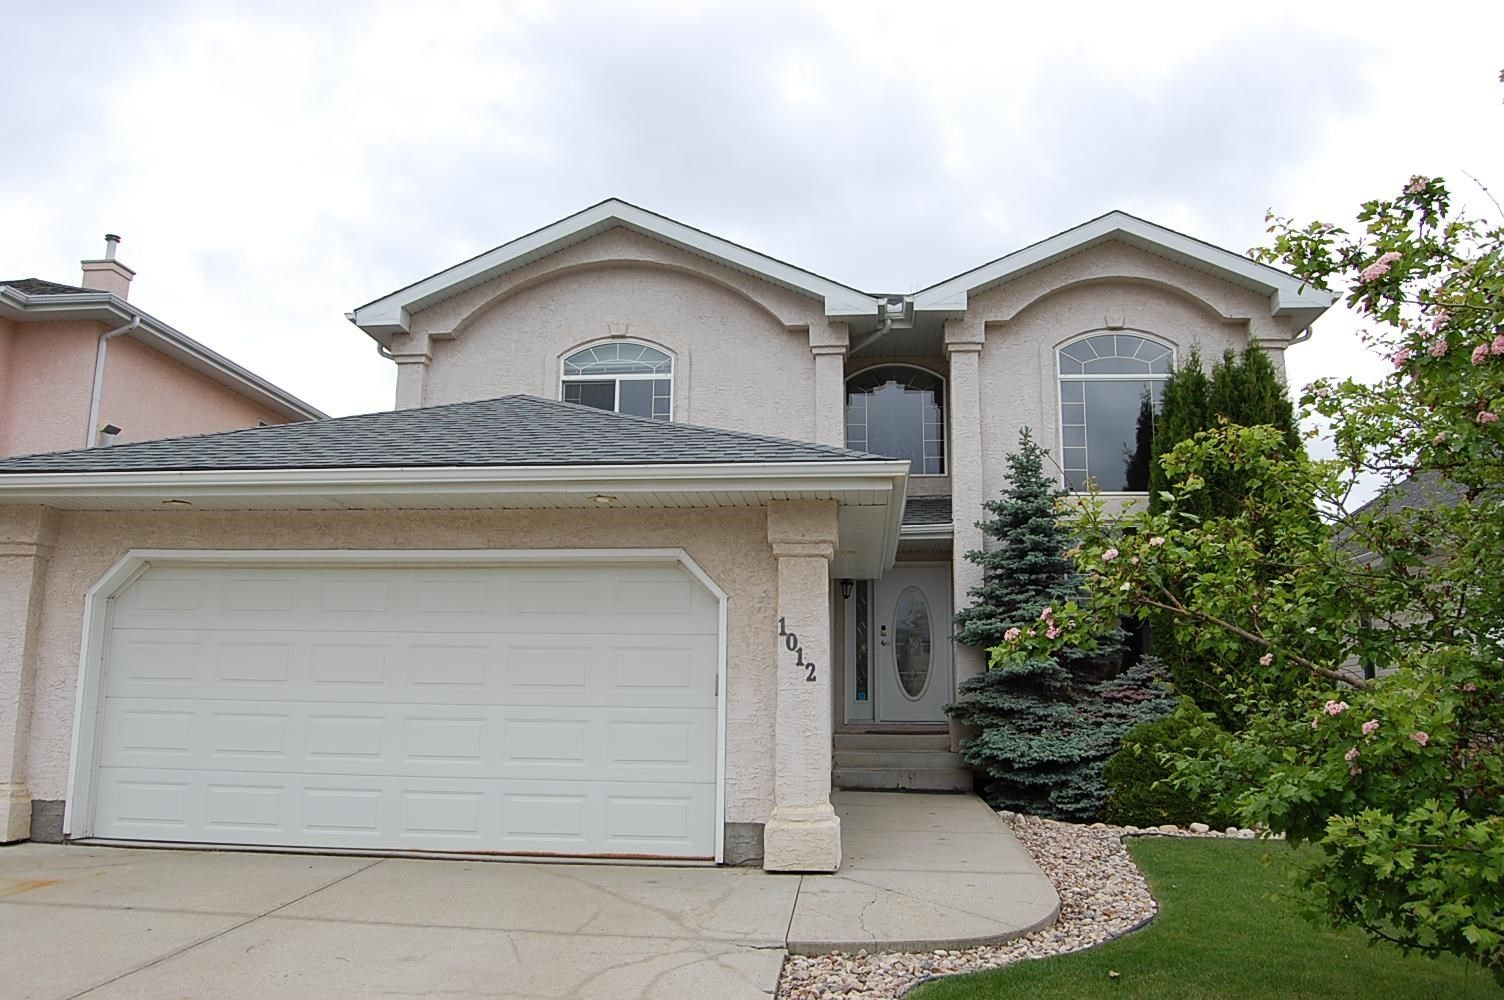 Main Photo: 1012 HOLGATE Place in Edmonton: Zone 14 House for sale : MLS®# E4247473